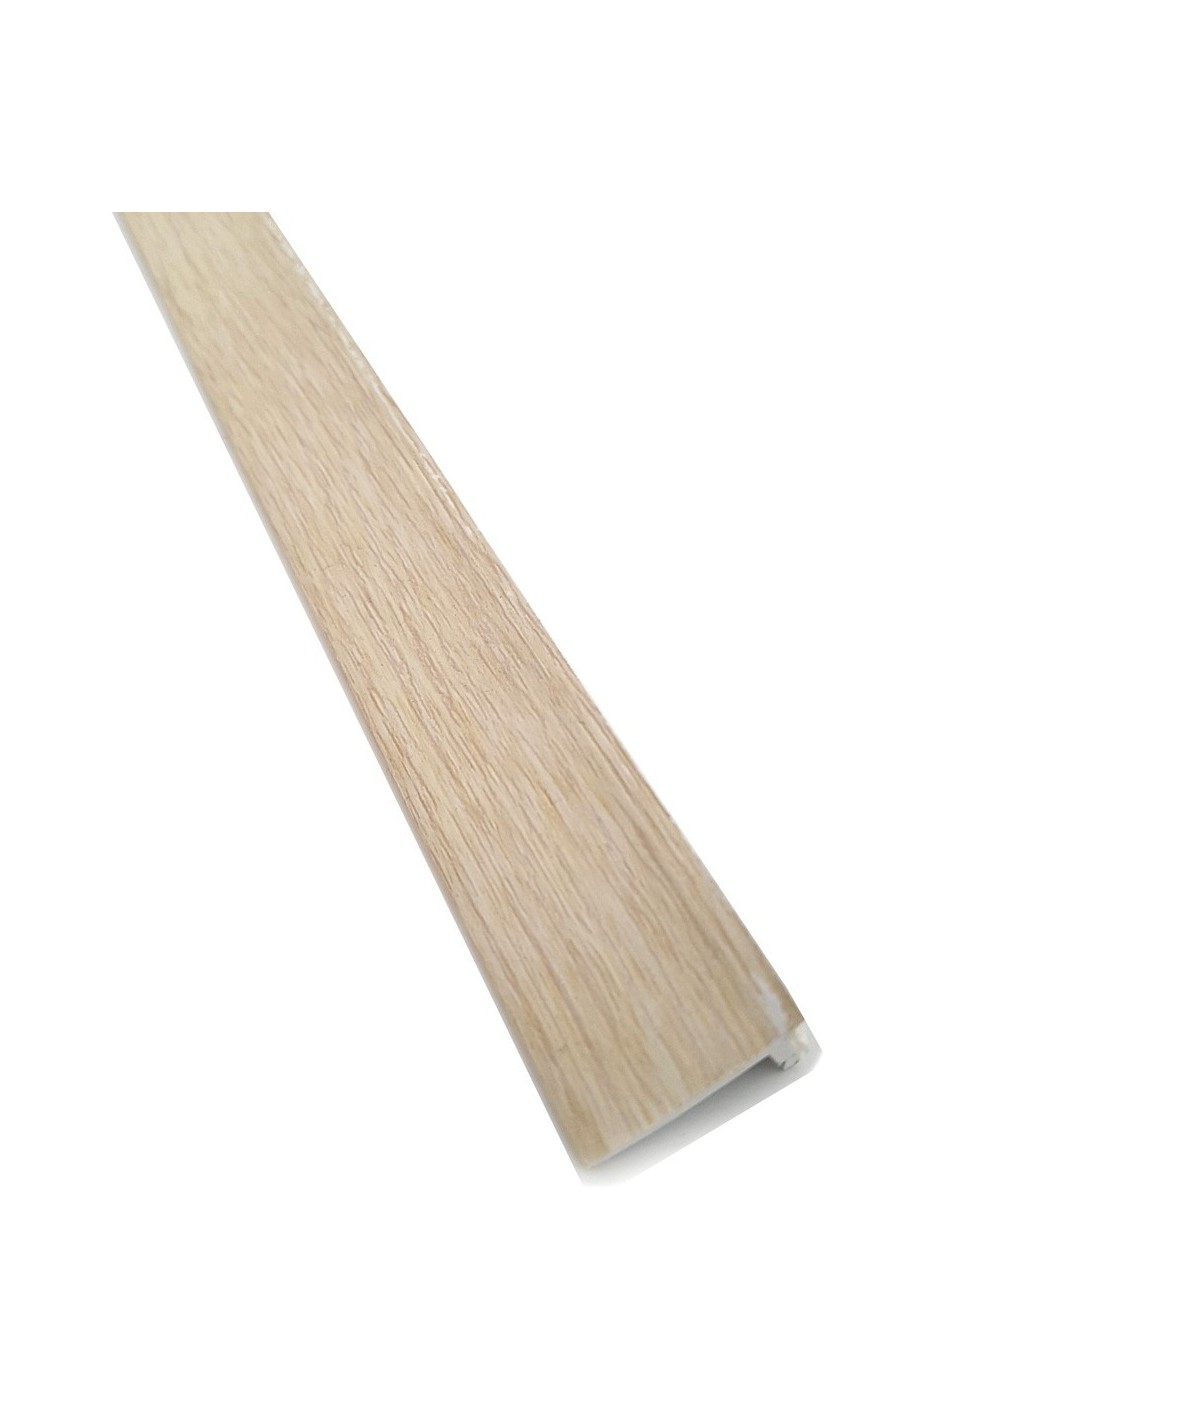 Cream White Oak Floor Edge Adhesive Trim 10 x 2Mtr Lengths Bridge Gap Between Floor and Skirting